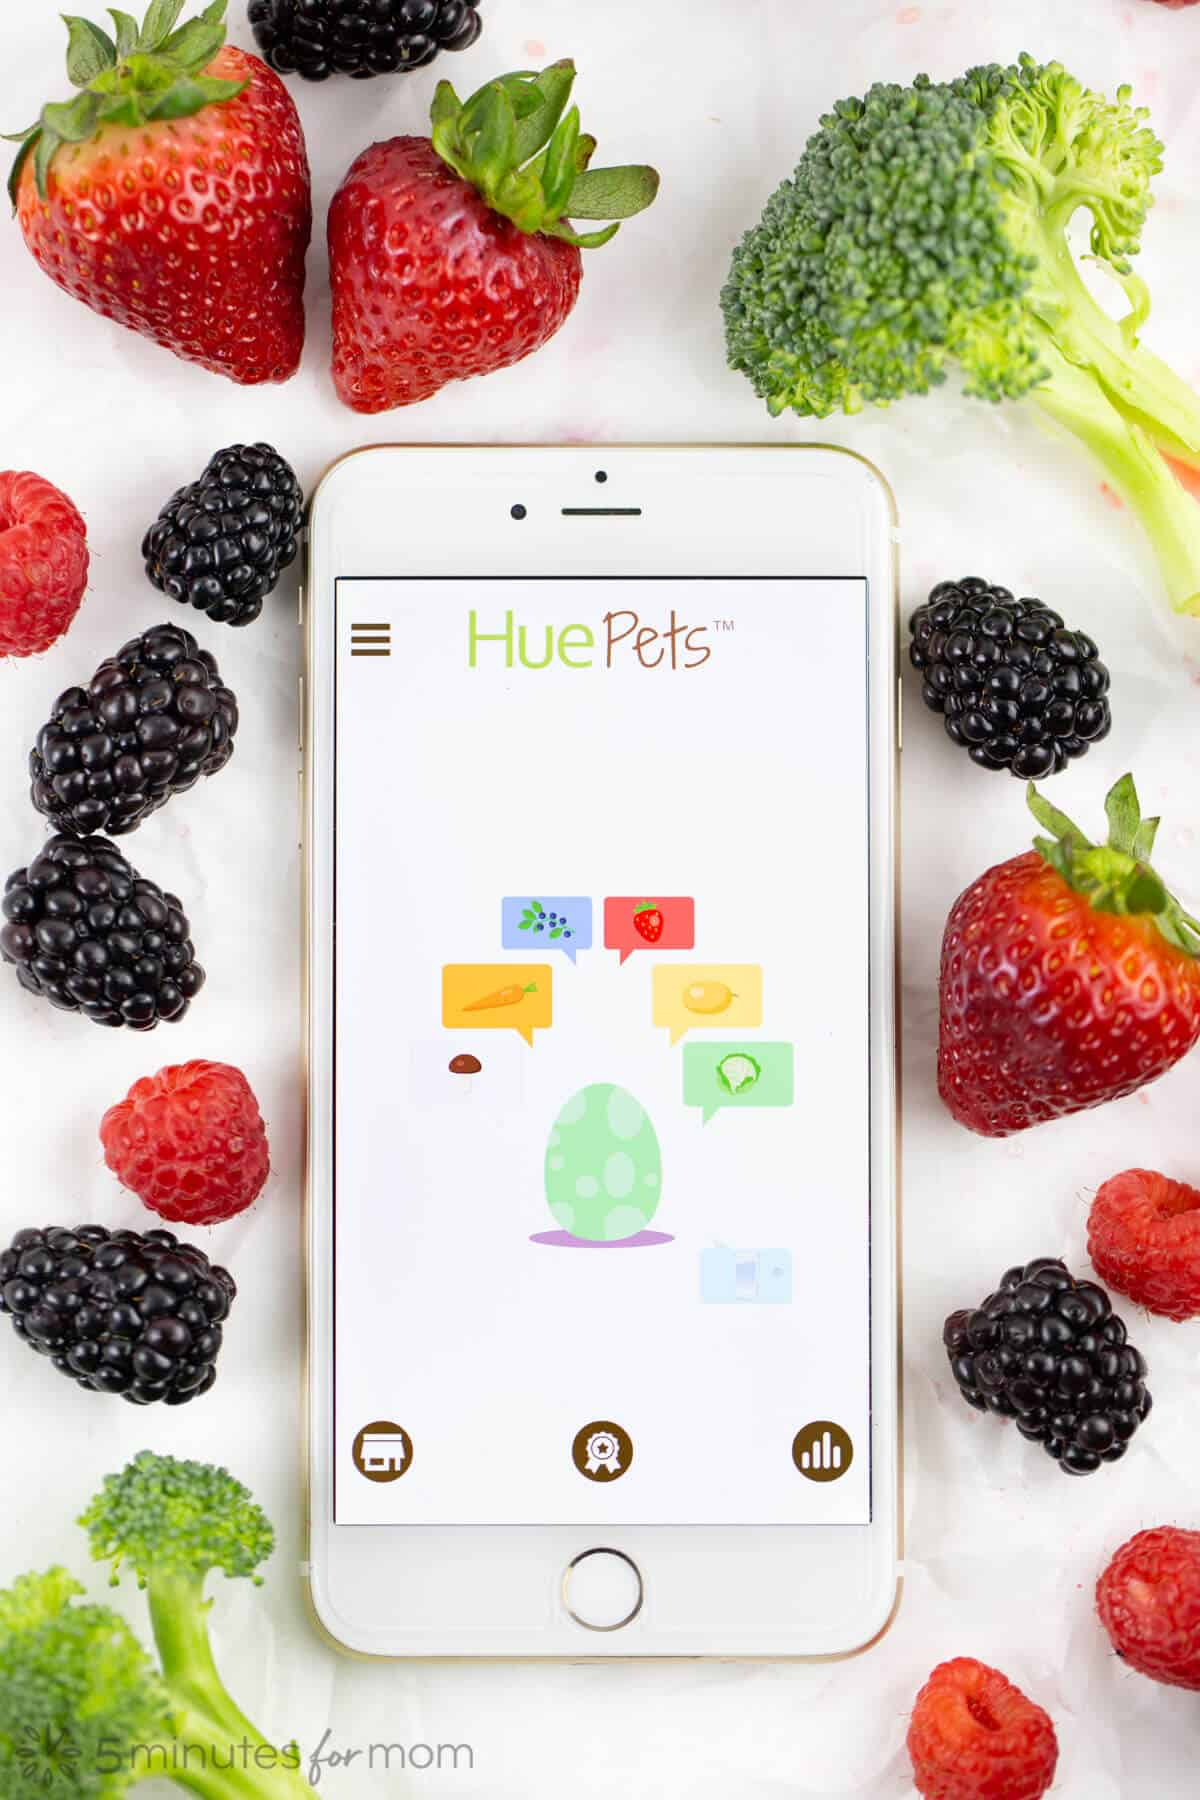 HuePets App with Fruits and Veggies